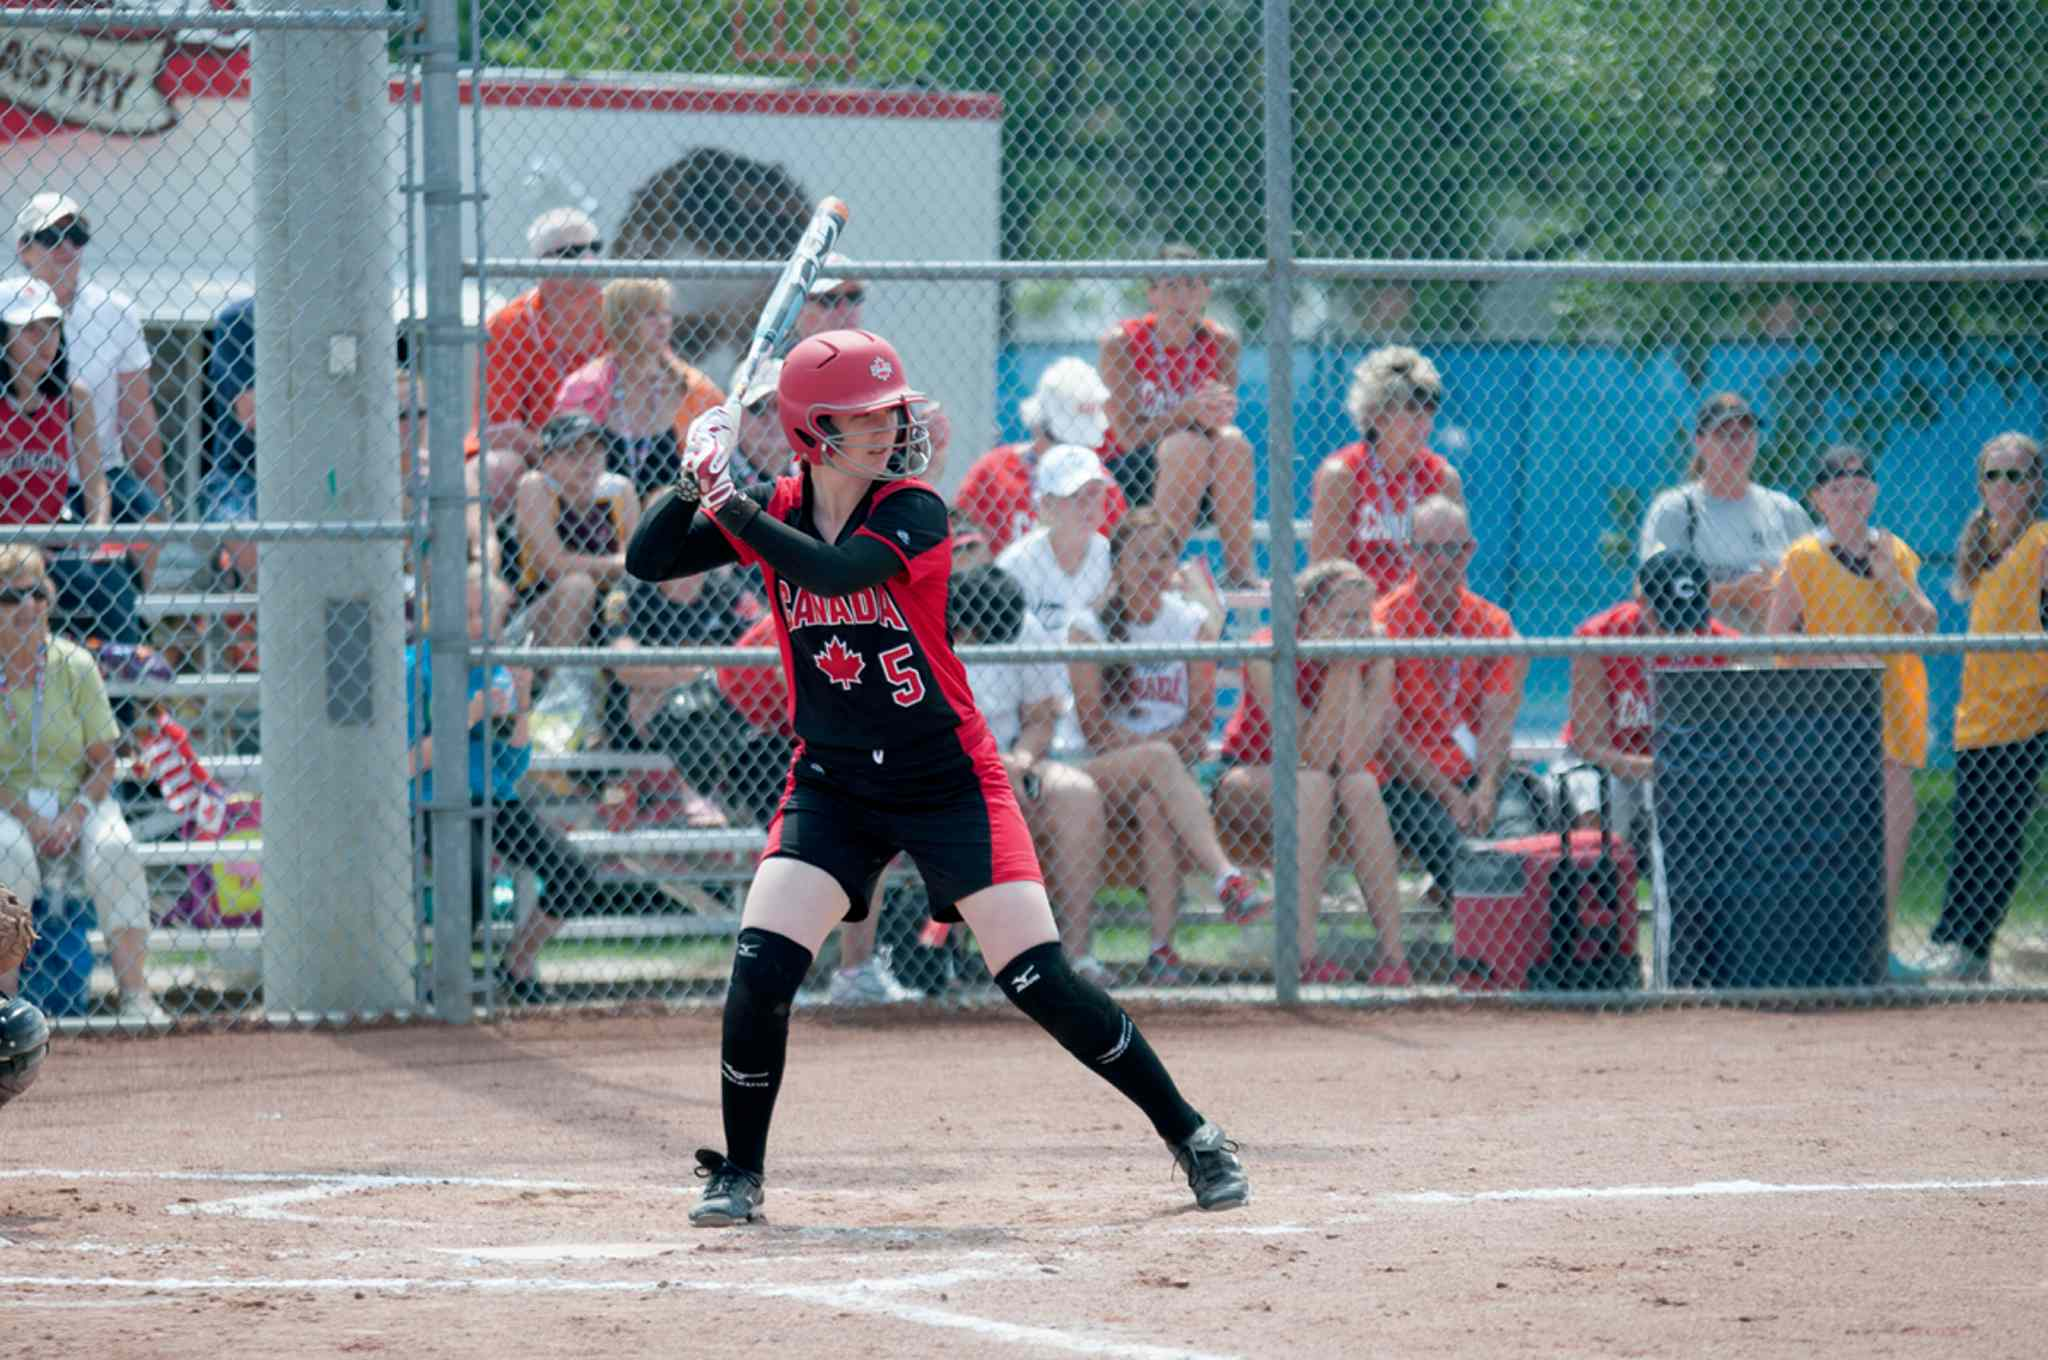 Hailey Unger, who currently plays softball for Dakota Wesleyan University, will be teaching at her Team Canada Catching Clinic at Home Run Sports Training Centre (905 King Edward St.) starting May 29.